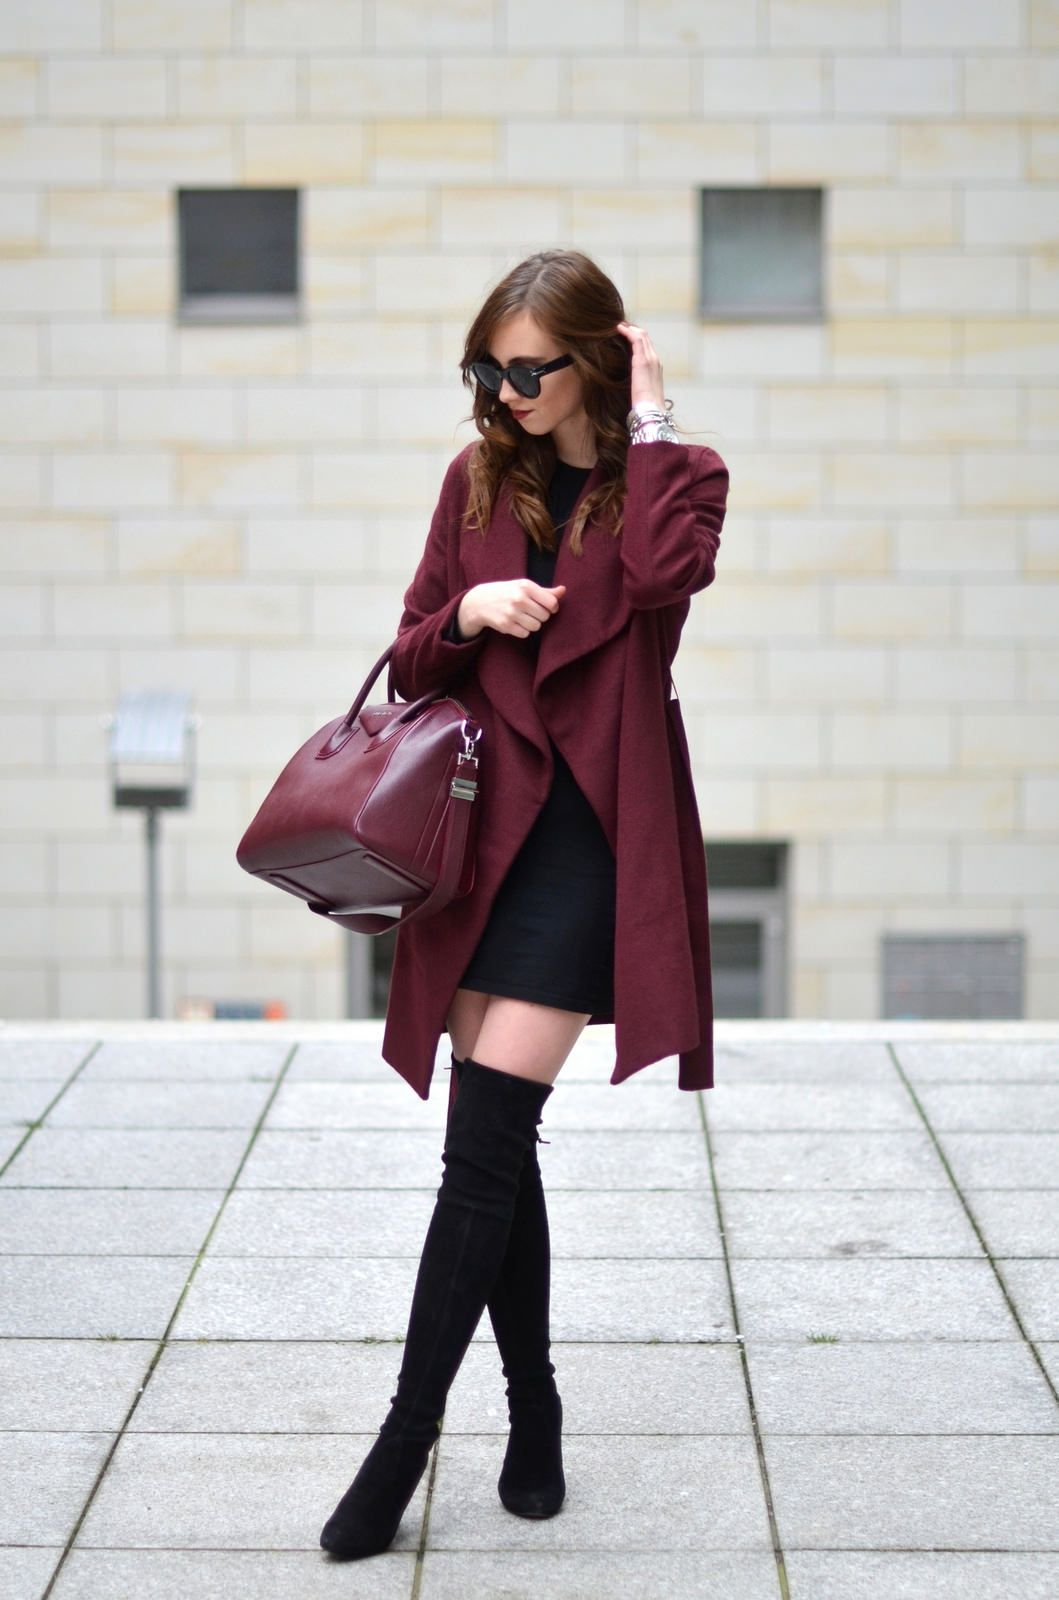 The Thigh High Boots Outfit 35 Ways To Wear Thigh High Boots Just The Design Fashion Fashion Outfits Cool Outfits [ 1600 x 1059 Pixel ]